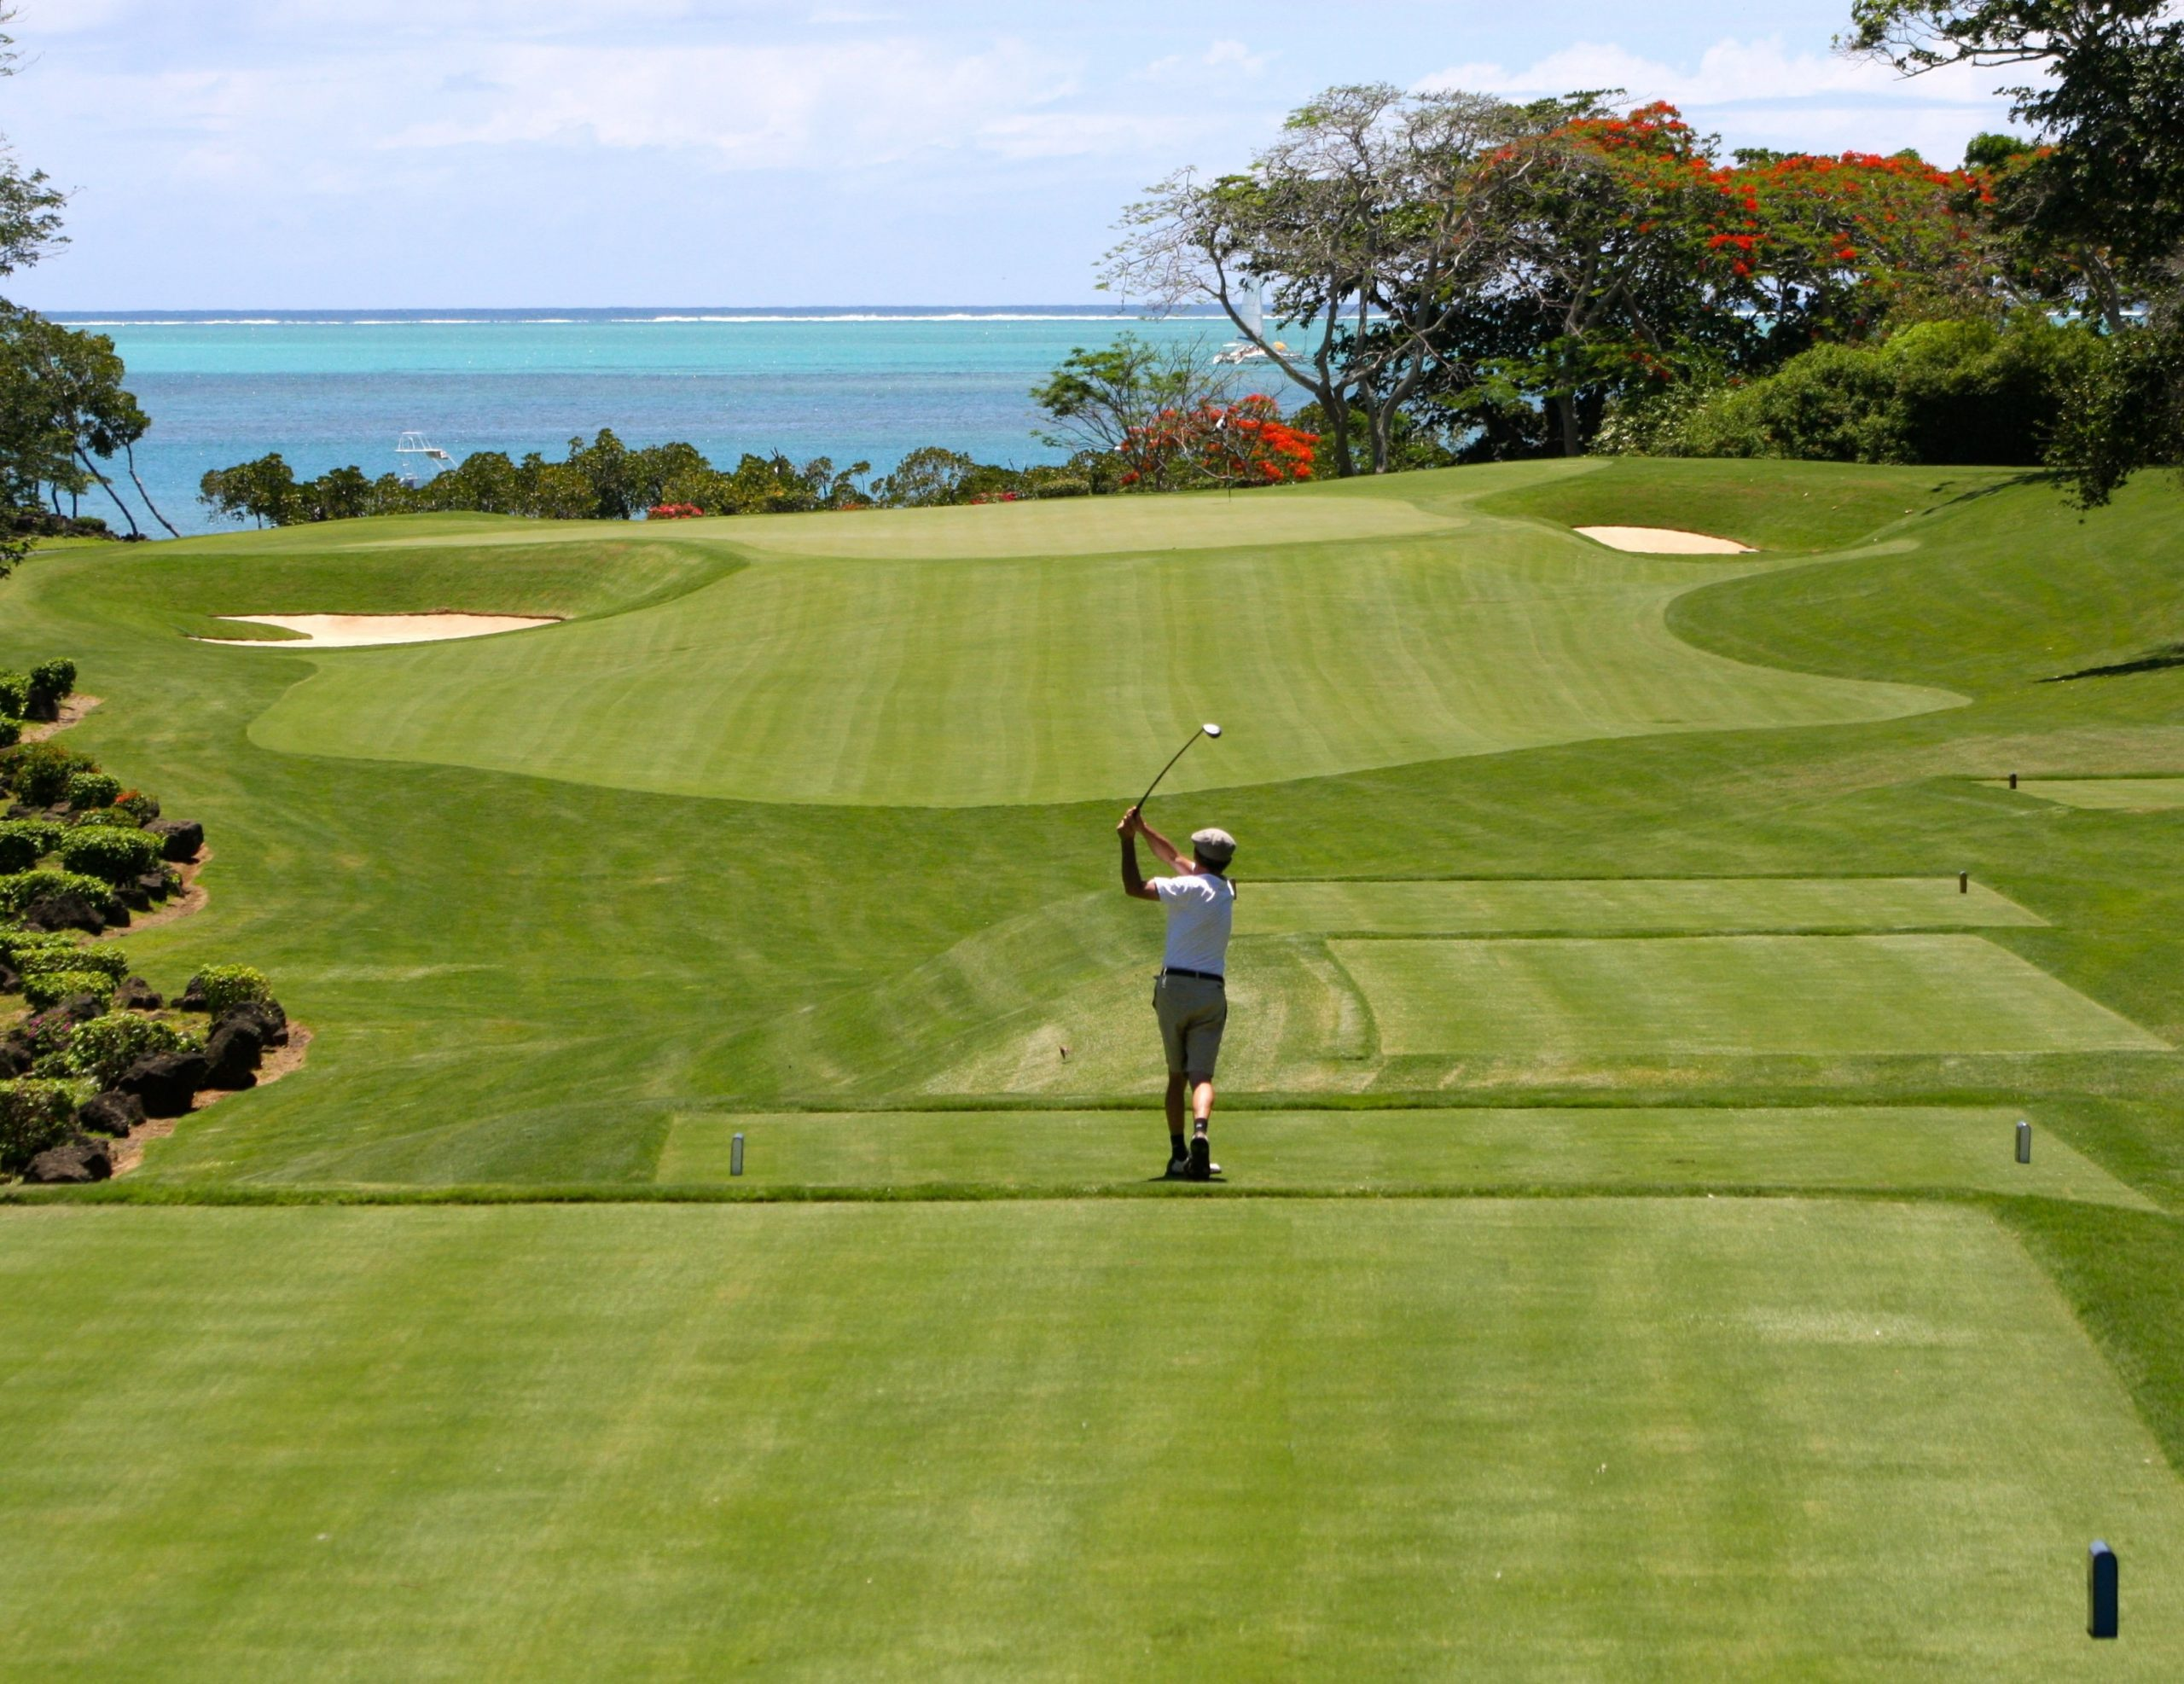 Request A Quote_Safely Fly in Style, Comfort and Convenience to Your Favorite Golf Destination